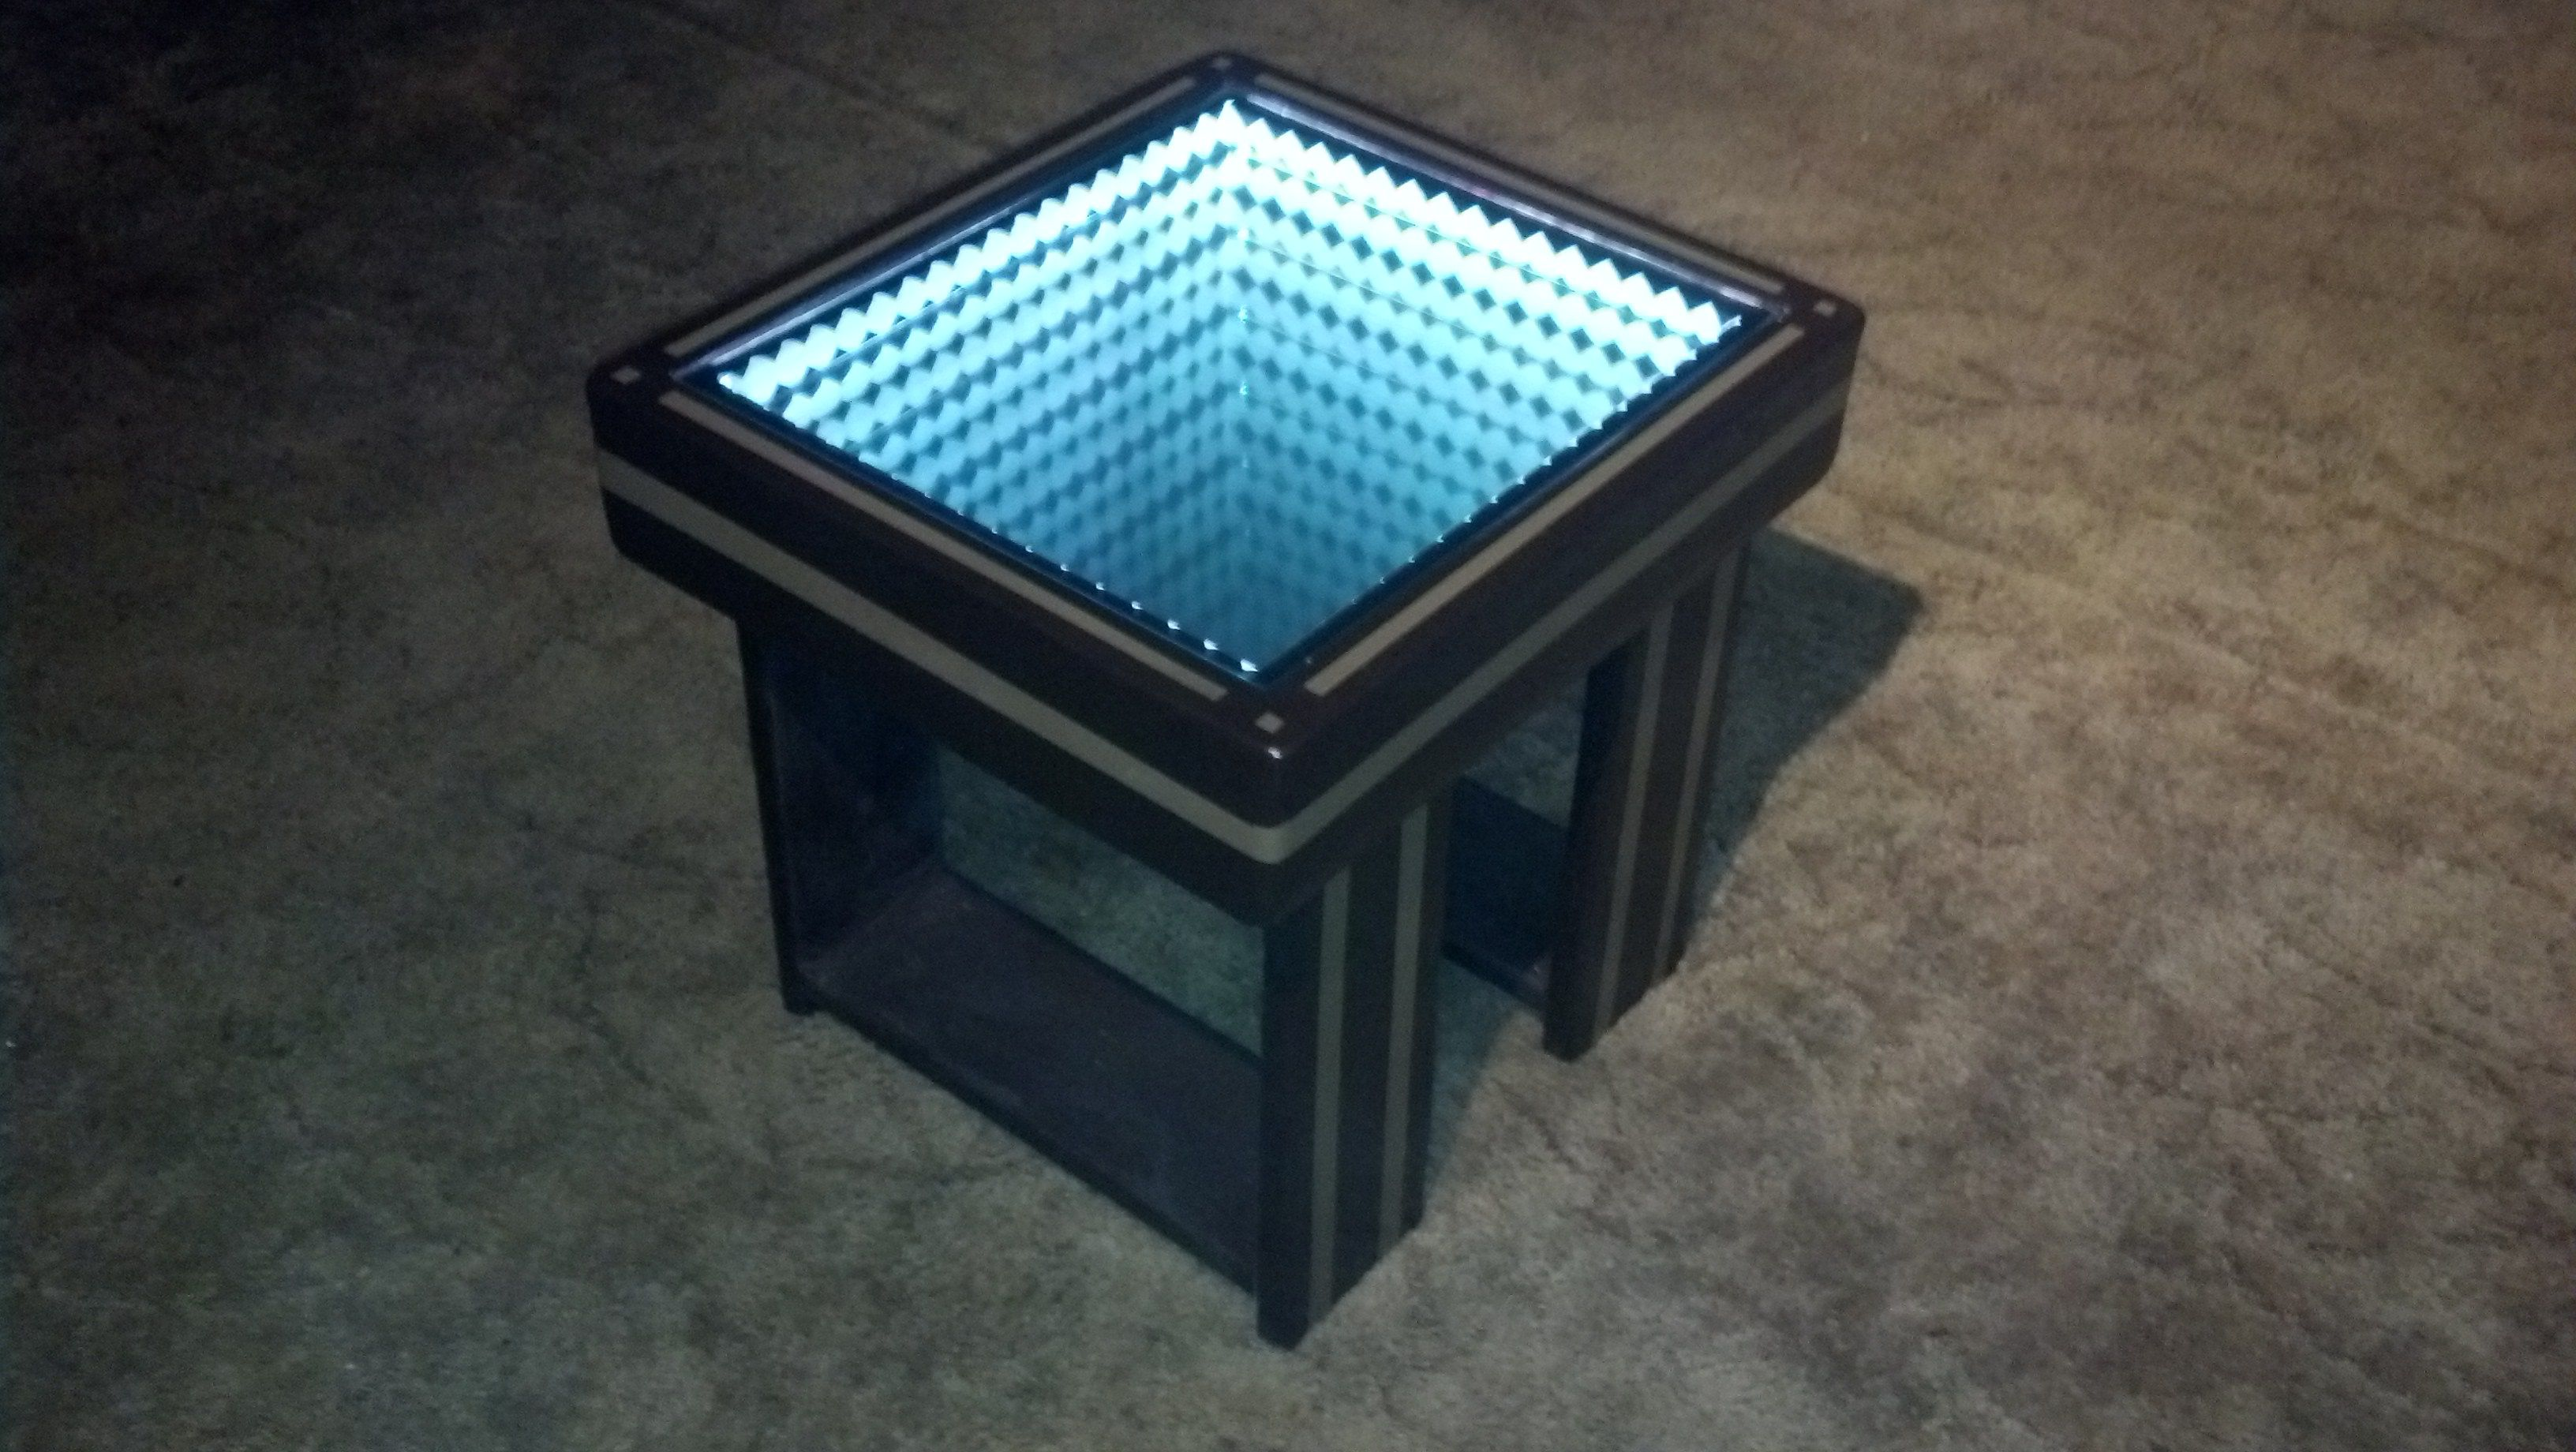 A Custom Made Infinity Mirror Coffee Table With Led Lighting Effects Espresso And Nutmeg To Order From Belly Brand Custommade